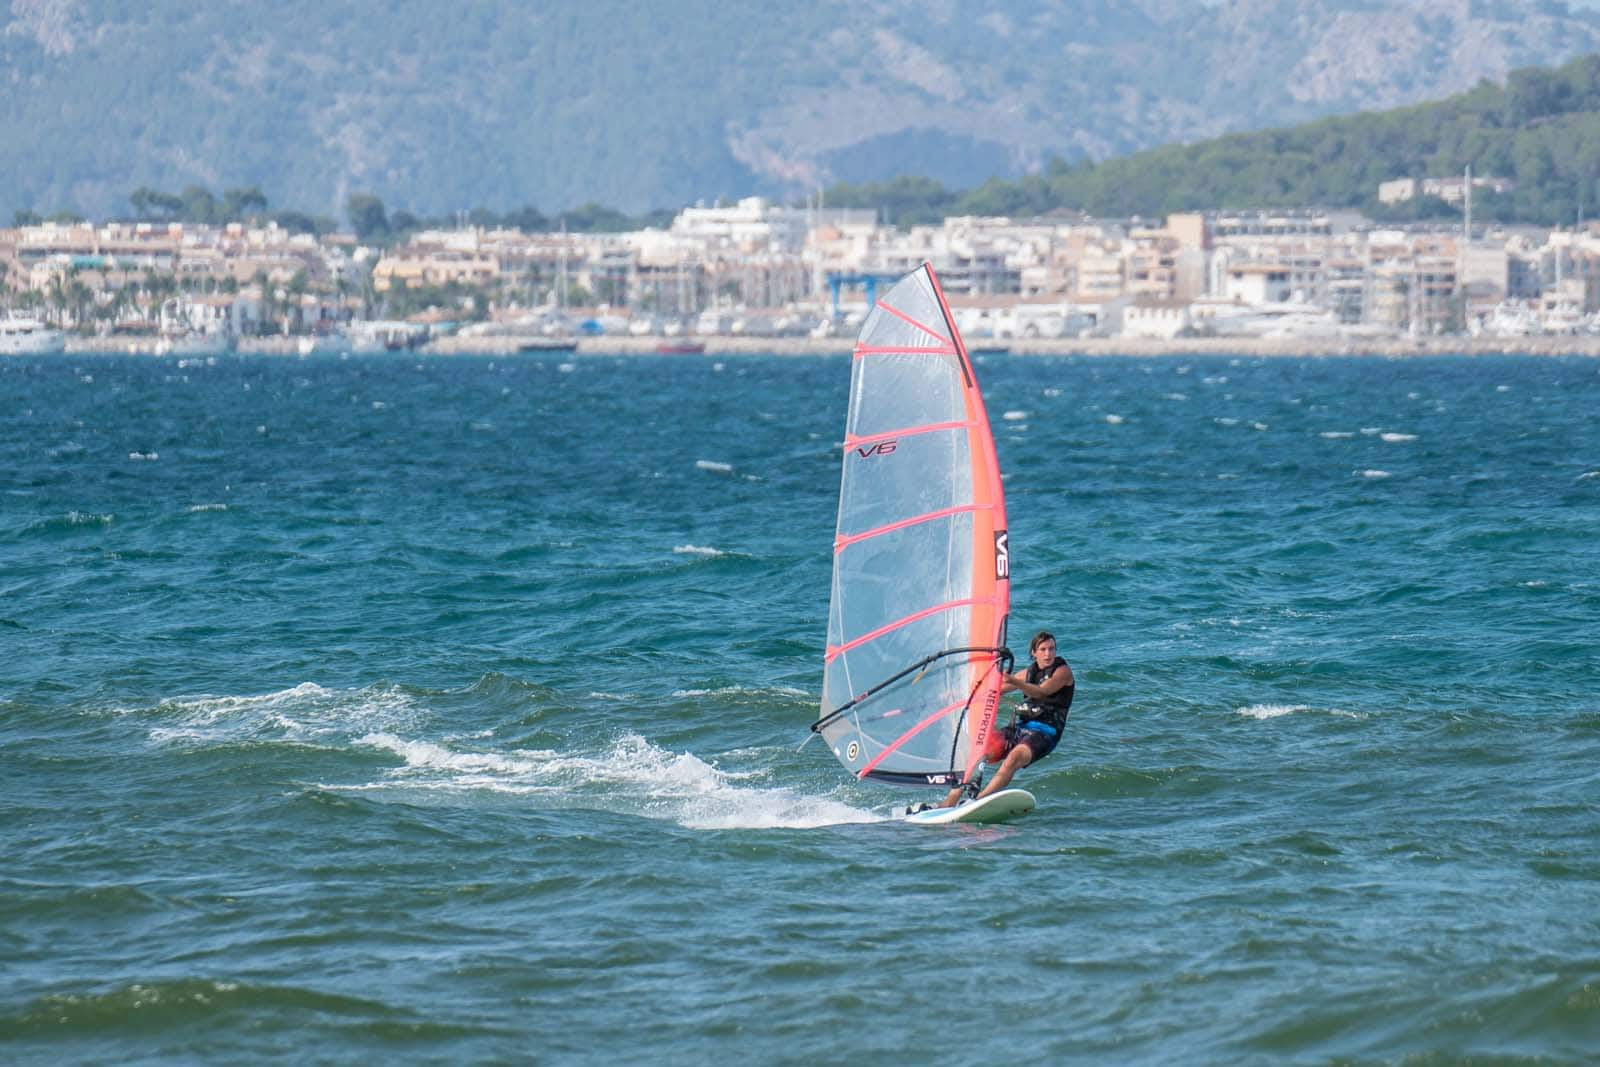 Beginner's private class or perfecting Windsurf